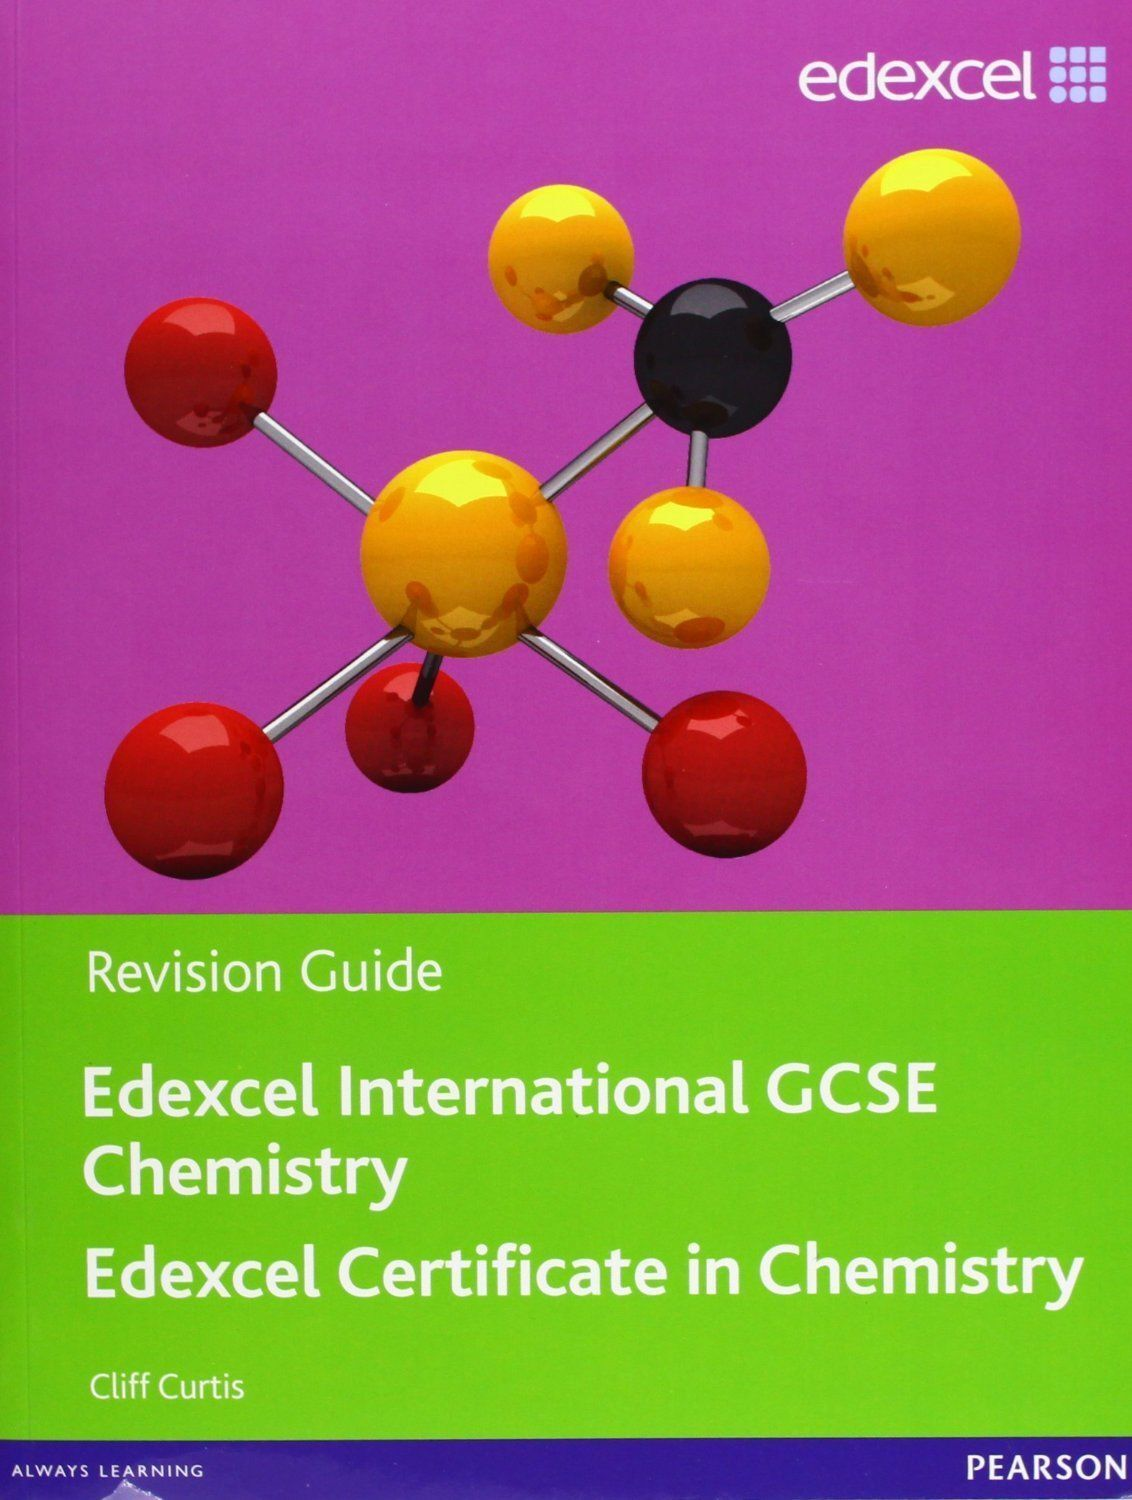 Edexcel IGCSE Chemistry Revision Guide with Student CD by Cliff Curtis  (Mixed media product, 2011) | eBay